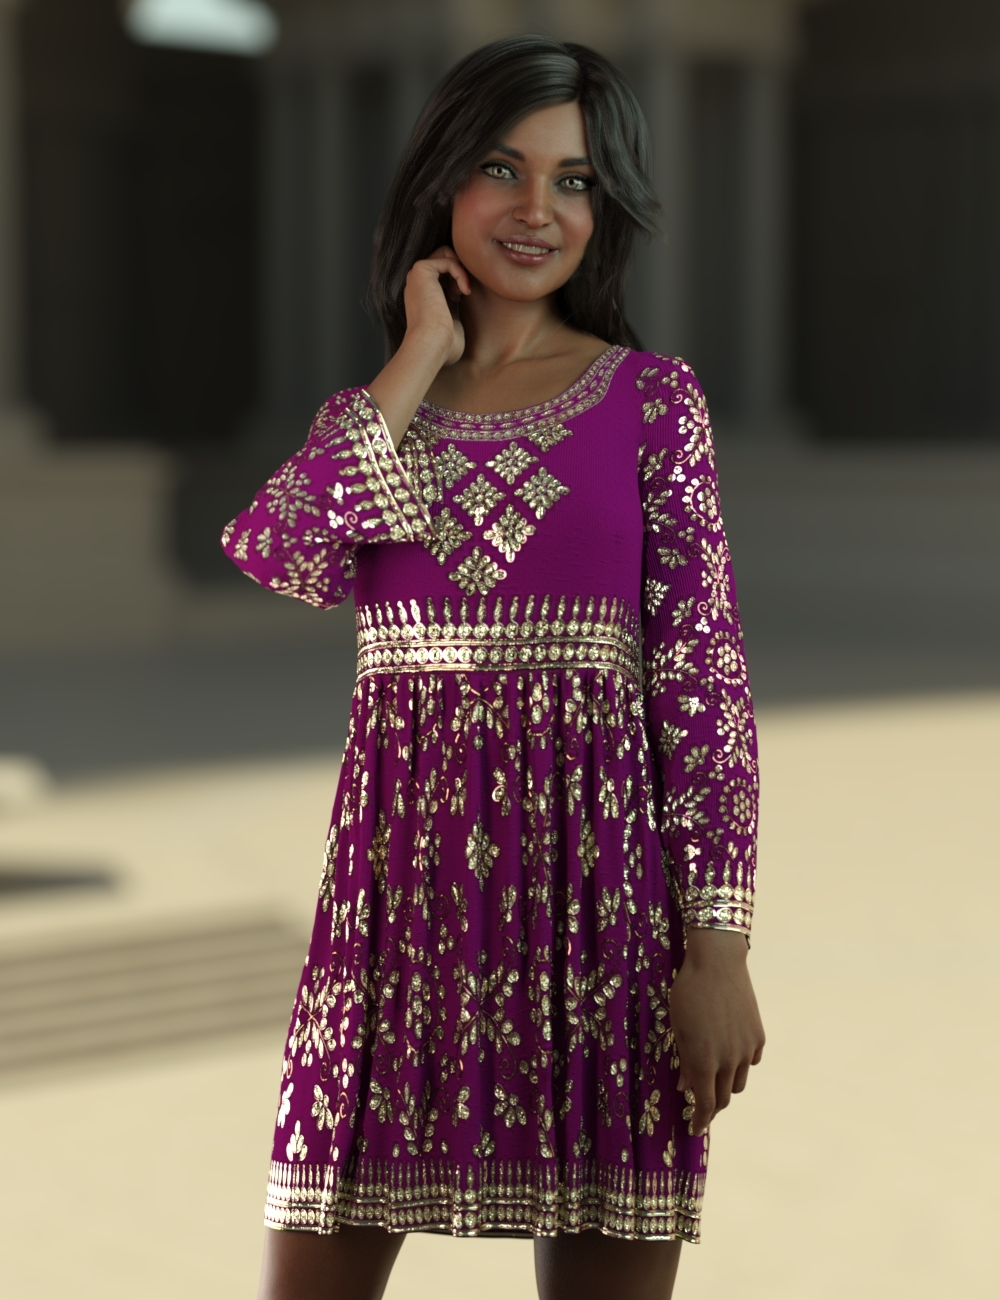 Indian girl with a beautiful tunic